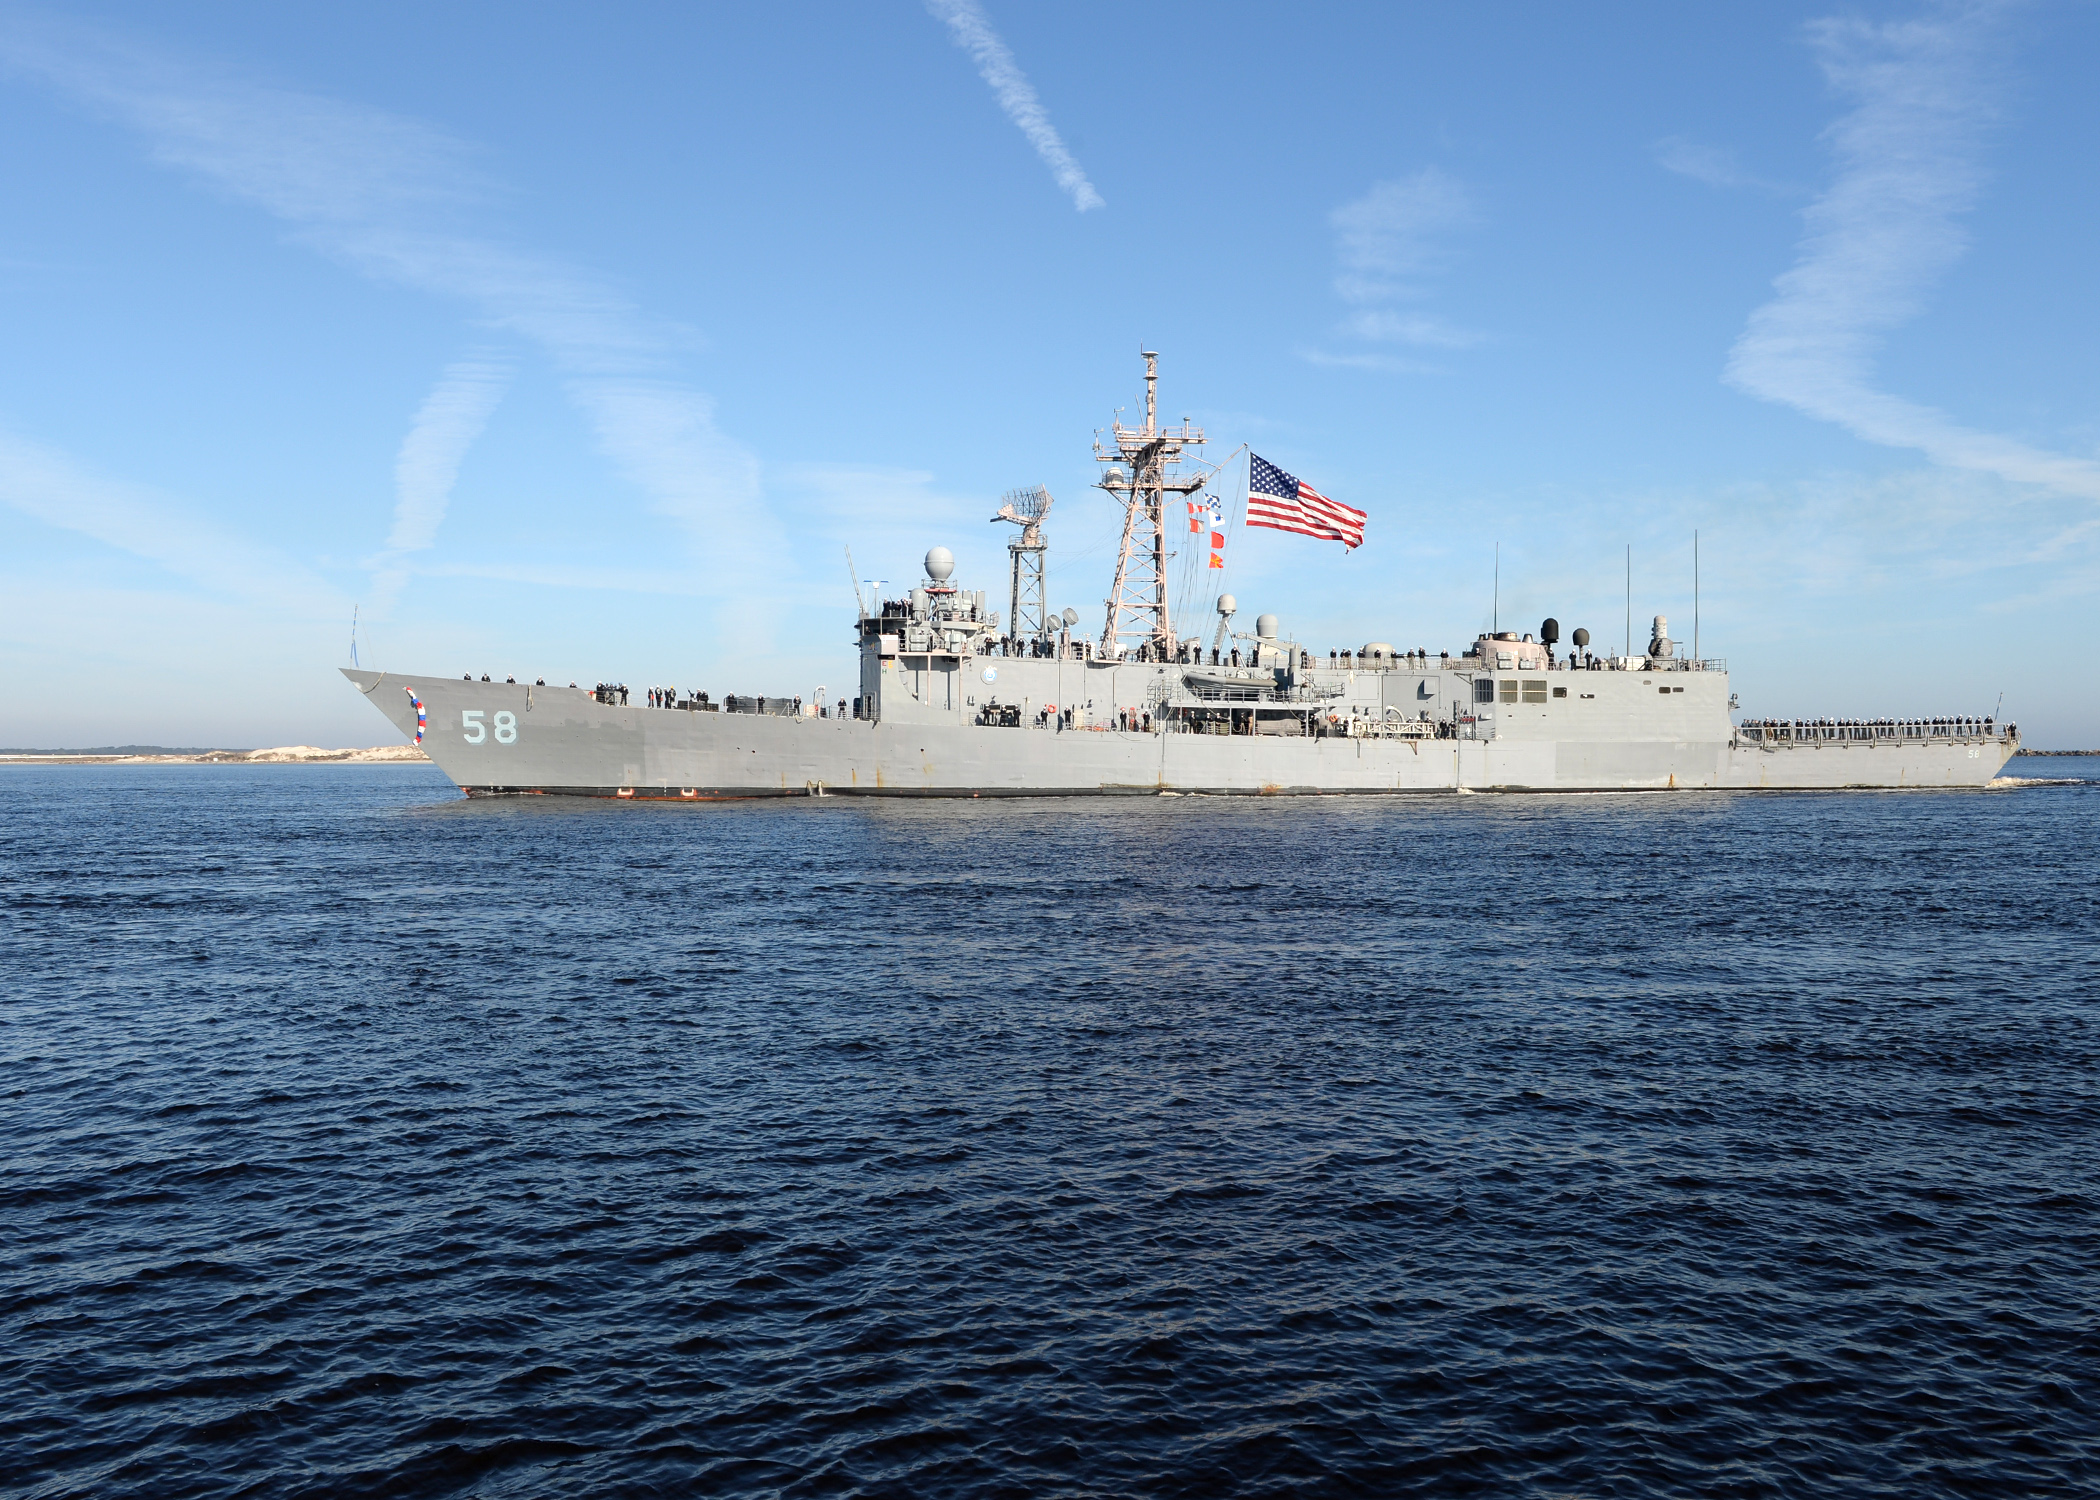 USS Samuel B. Roberts (FFG-58) arrives at Naval Station Mayport after completing a six-month deployment in the U.S. Africa Command area of responsibility. US Navy Photo